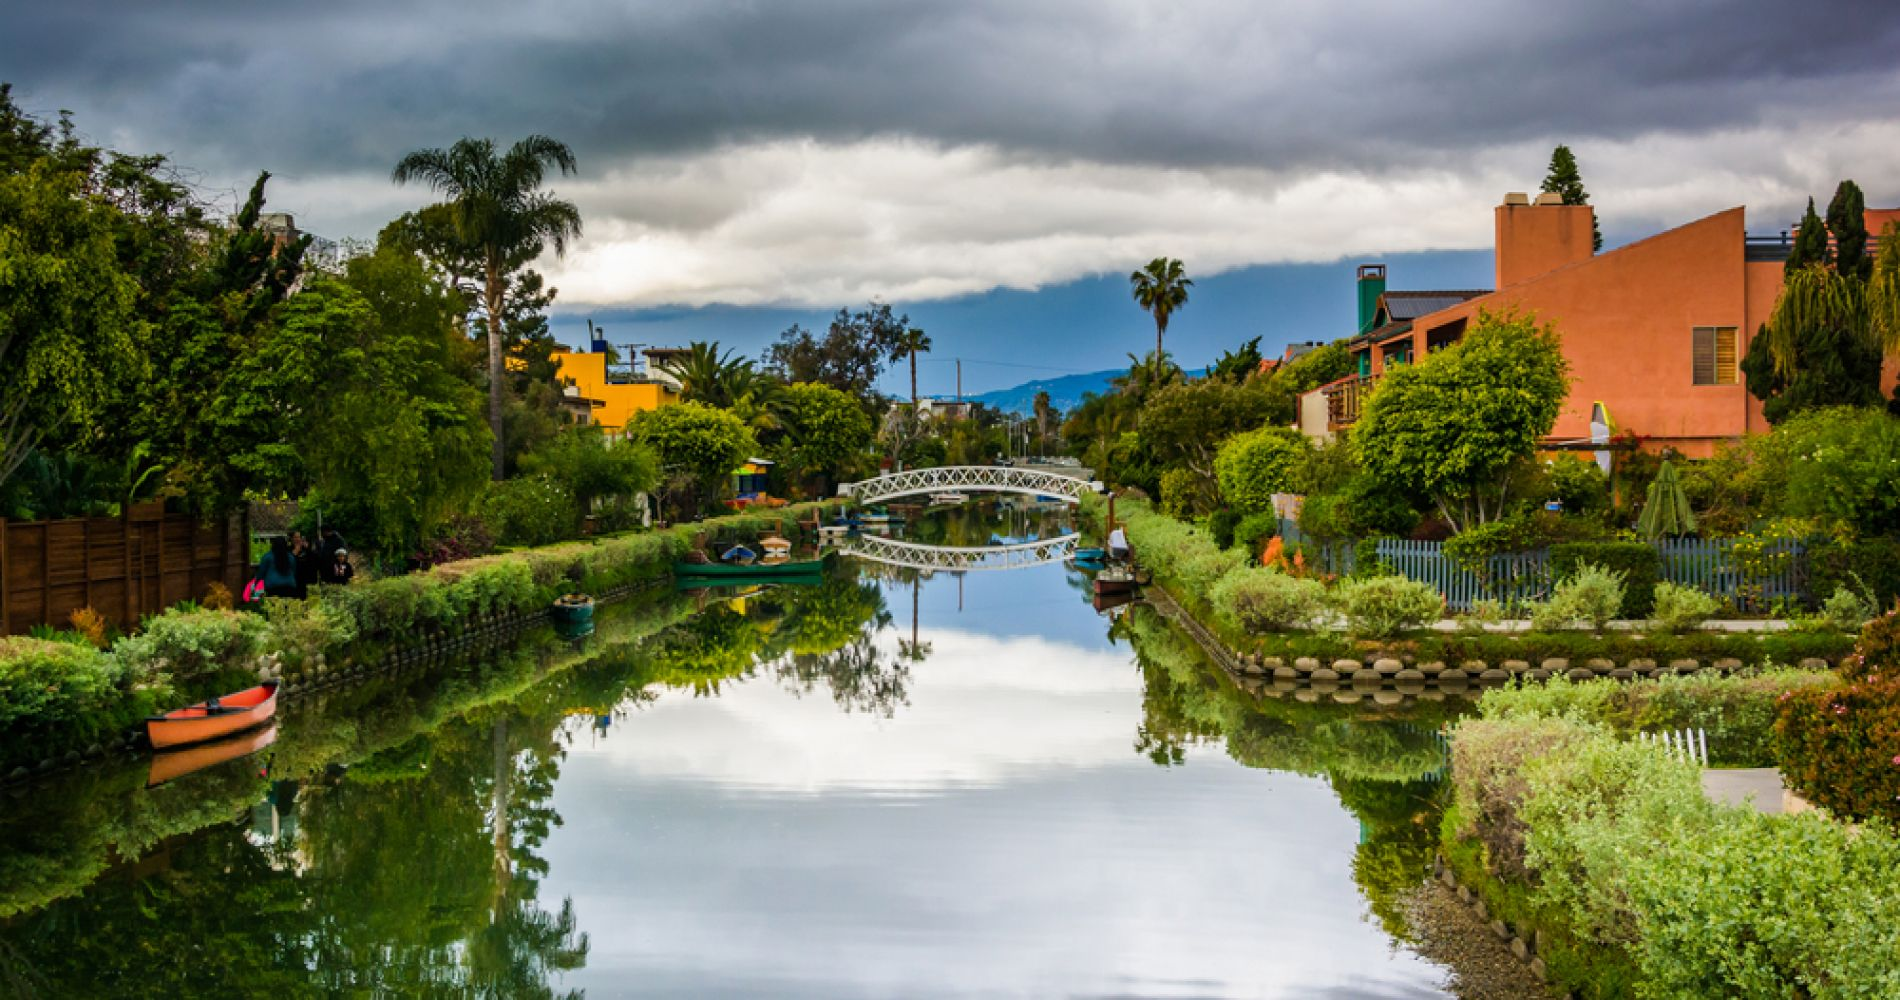 Walk along the Venice Canals in Los Angeles